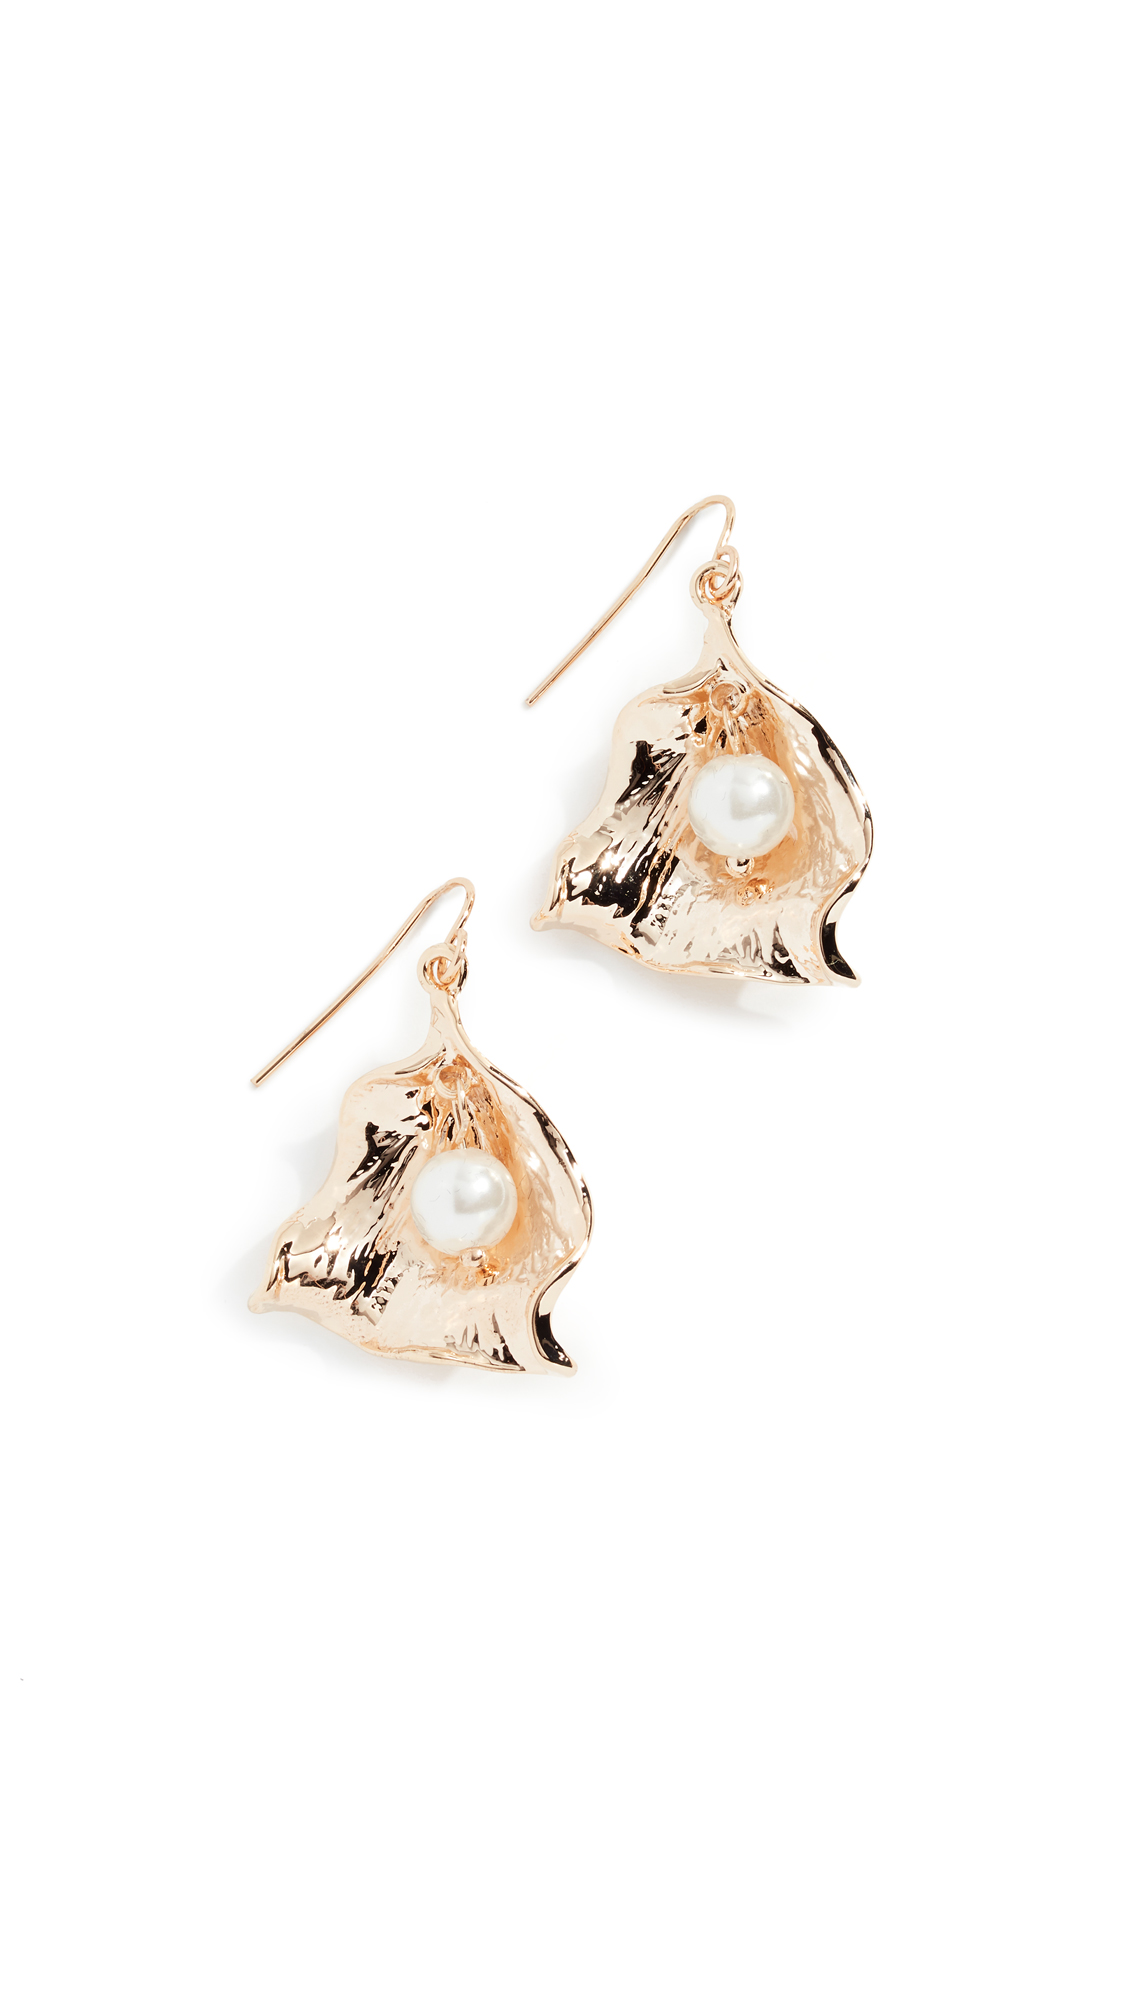 RELIQUIA Zanzibar Imitation Pearl Earrings in Yellow Gold/Pearl